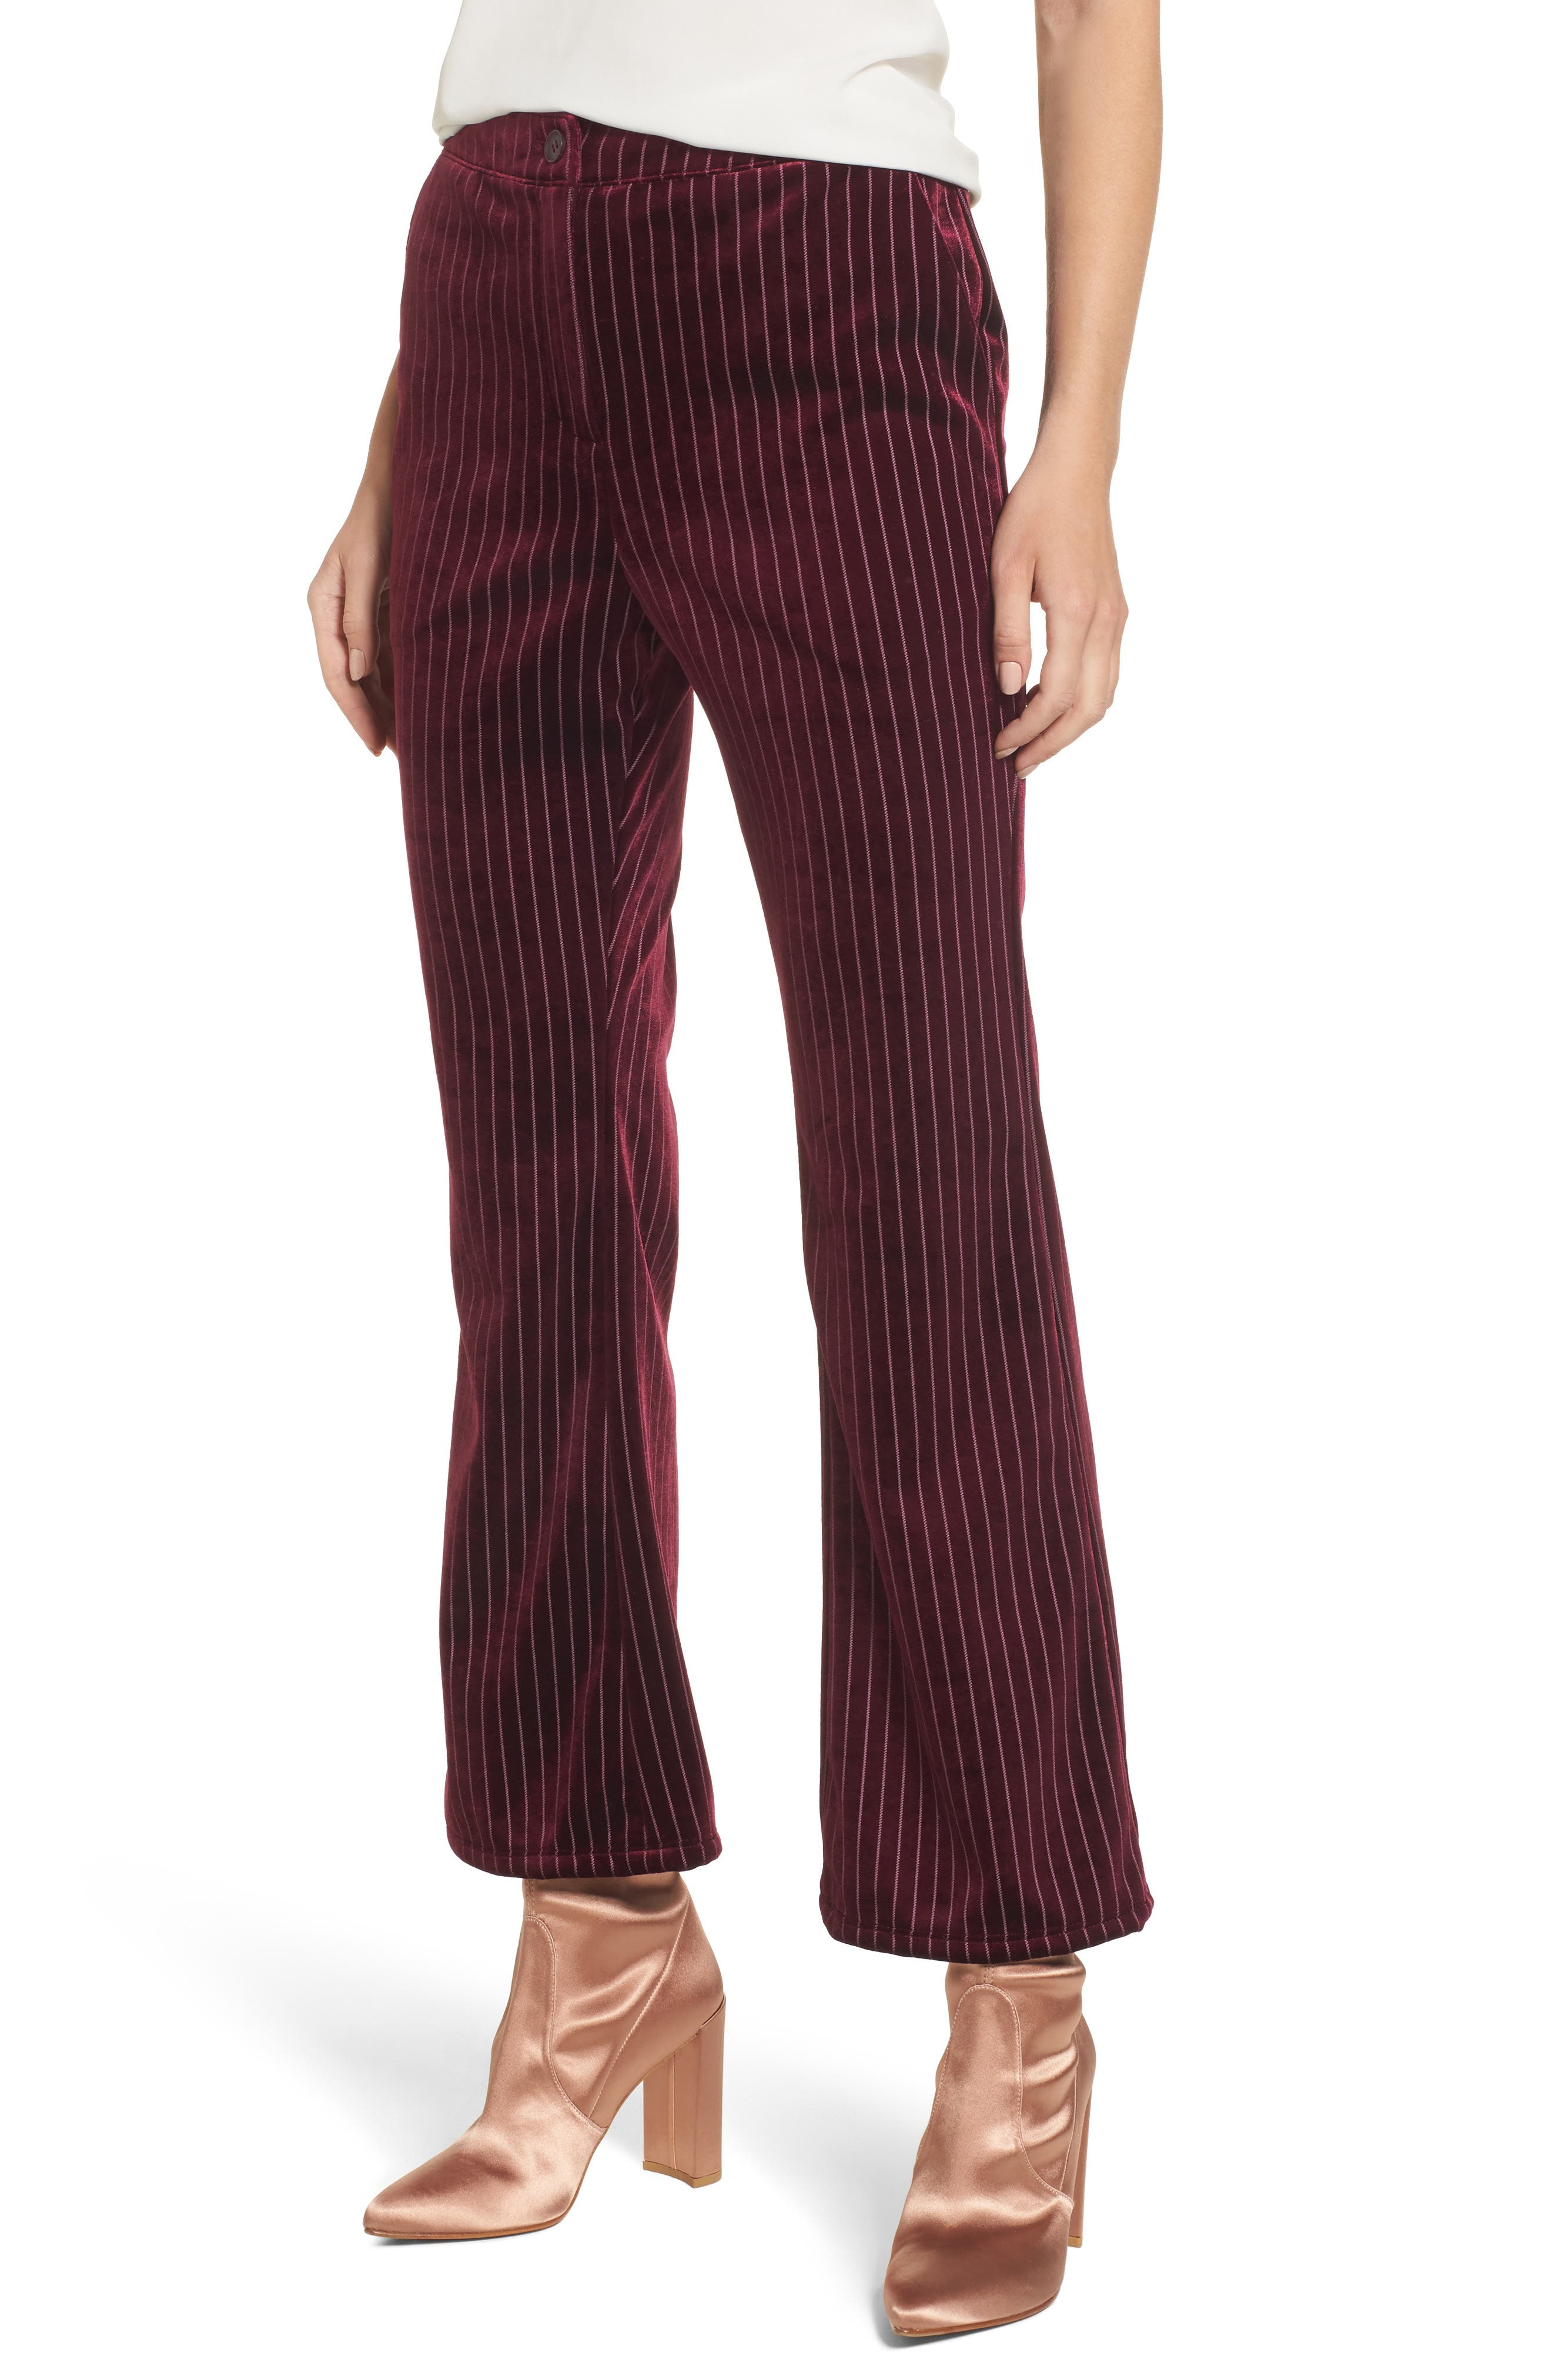 Velour Ankle Trousers,                             Main thumbnail 1, color,                             Red Tannin Dotted Stripe